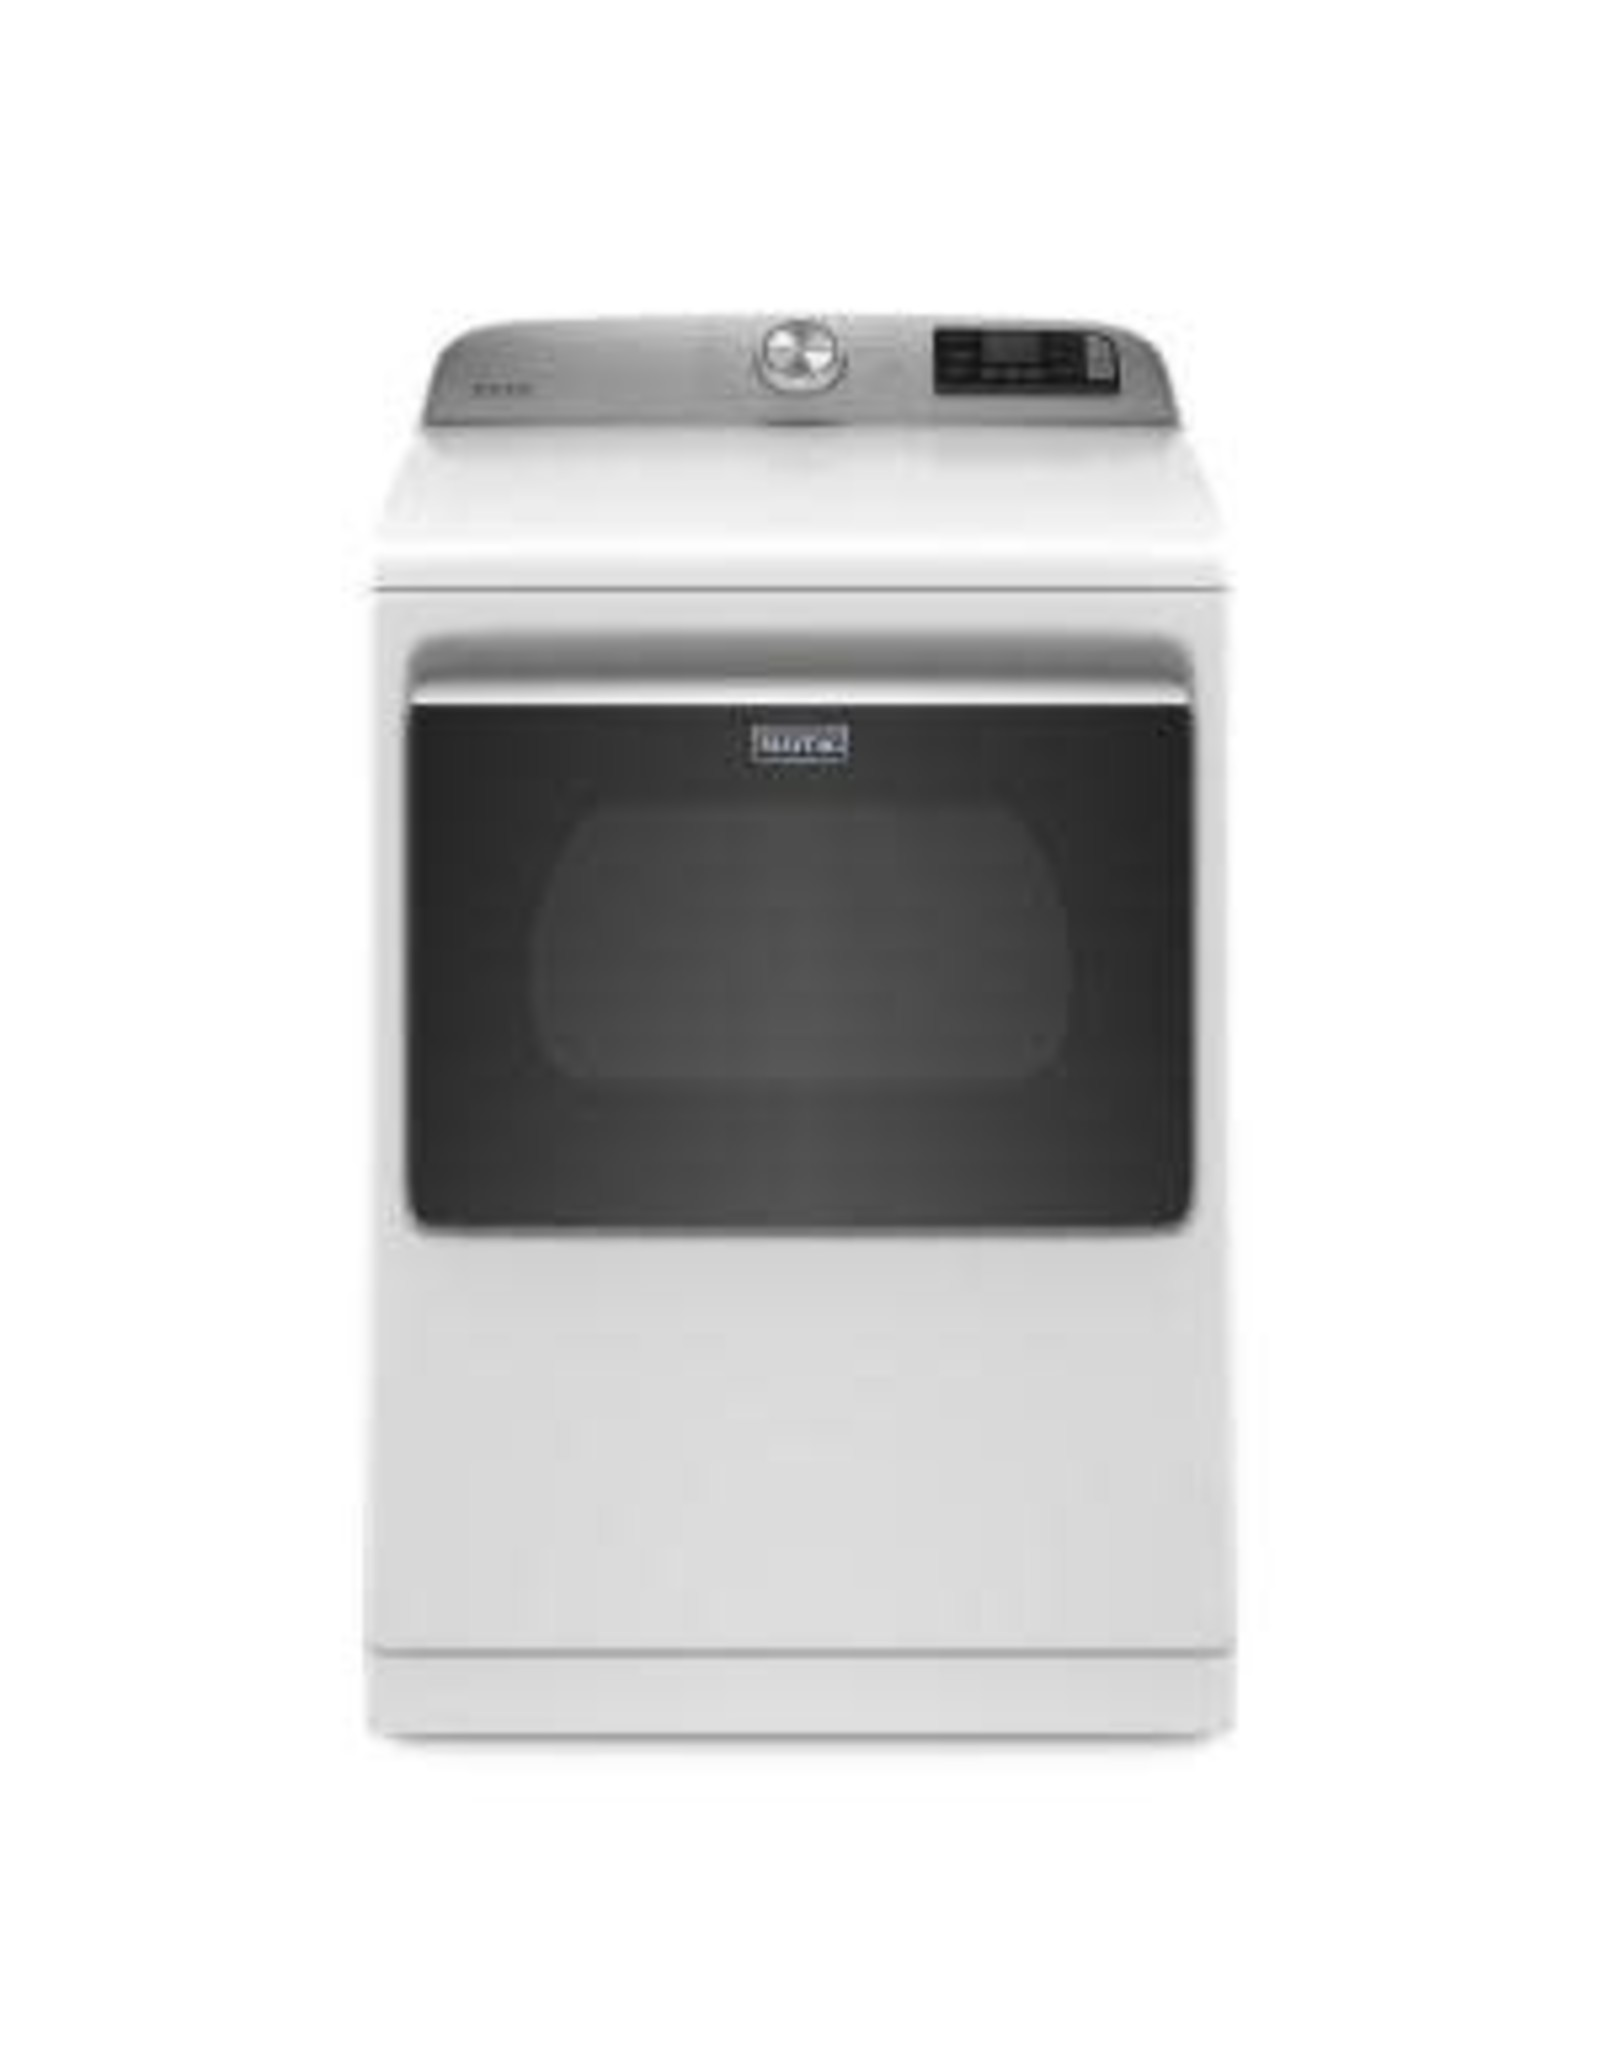 MAYTAG MED7230HW 7.4 cu. ft. 240-Volt Smart Capable White Electric Vented Dryer with Hamper Door and Steam, ENERGY STAR